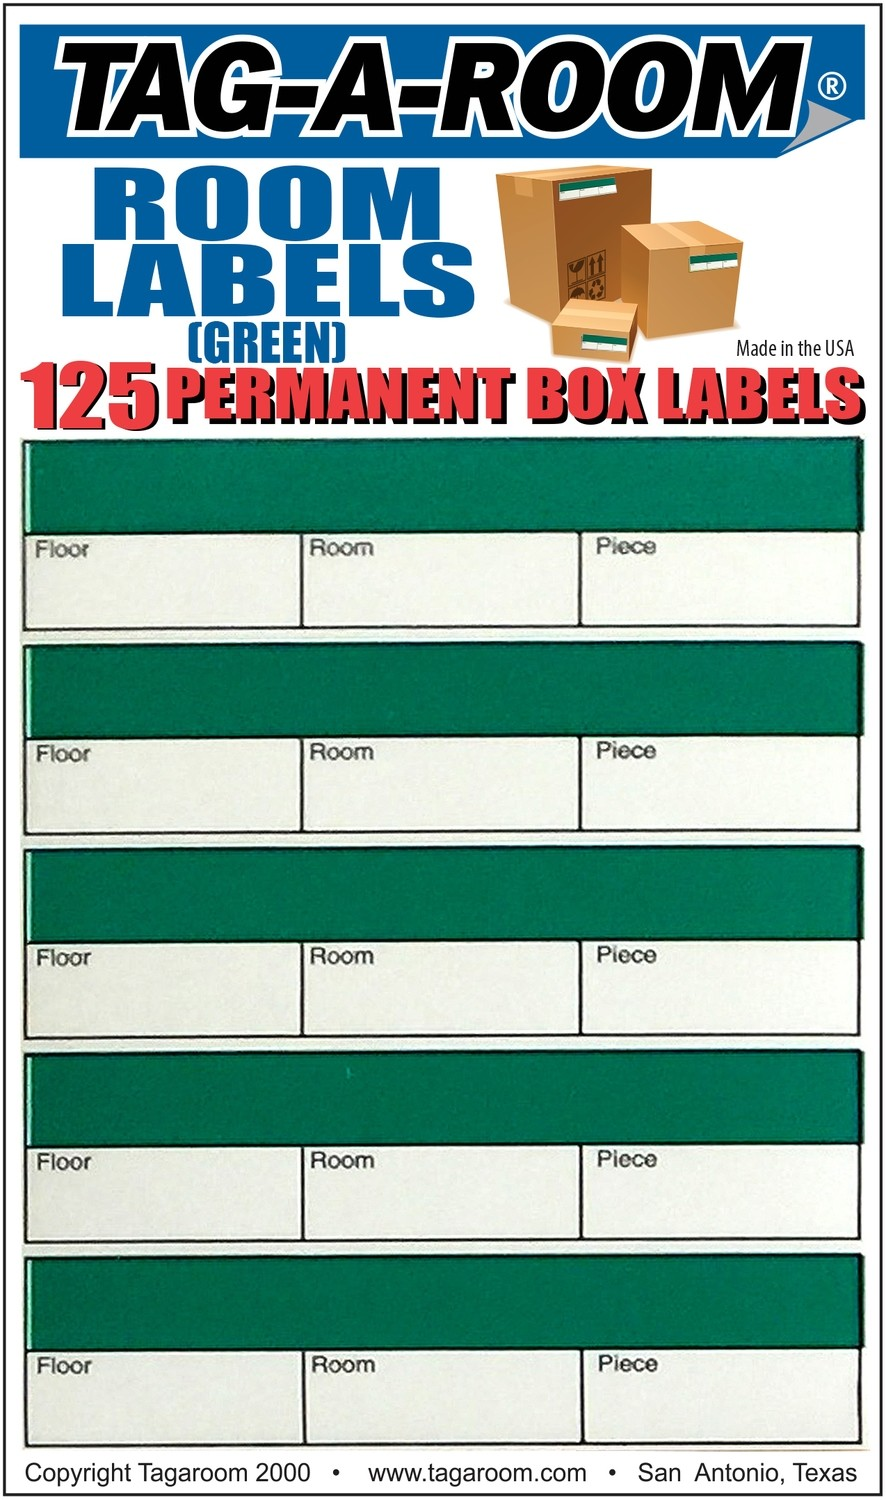 Office - Label - Room - Green - 125 Count